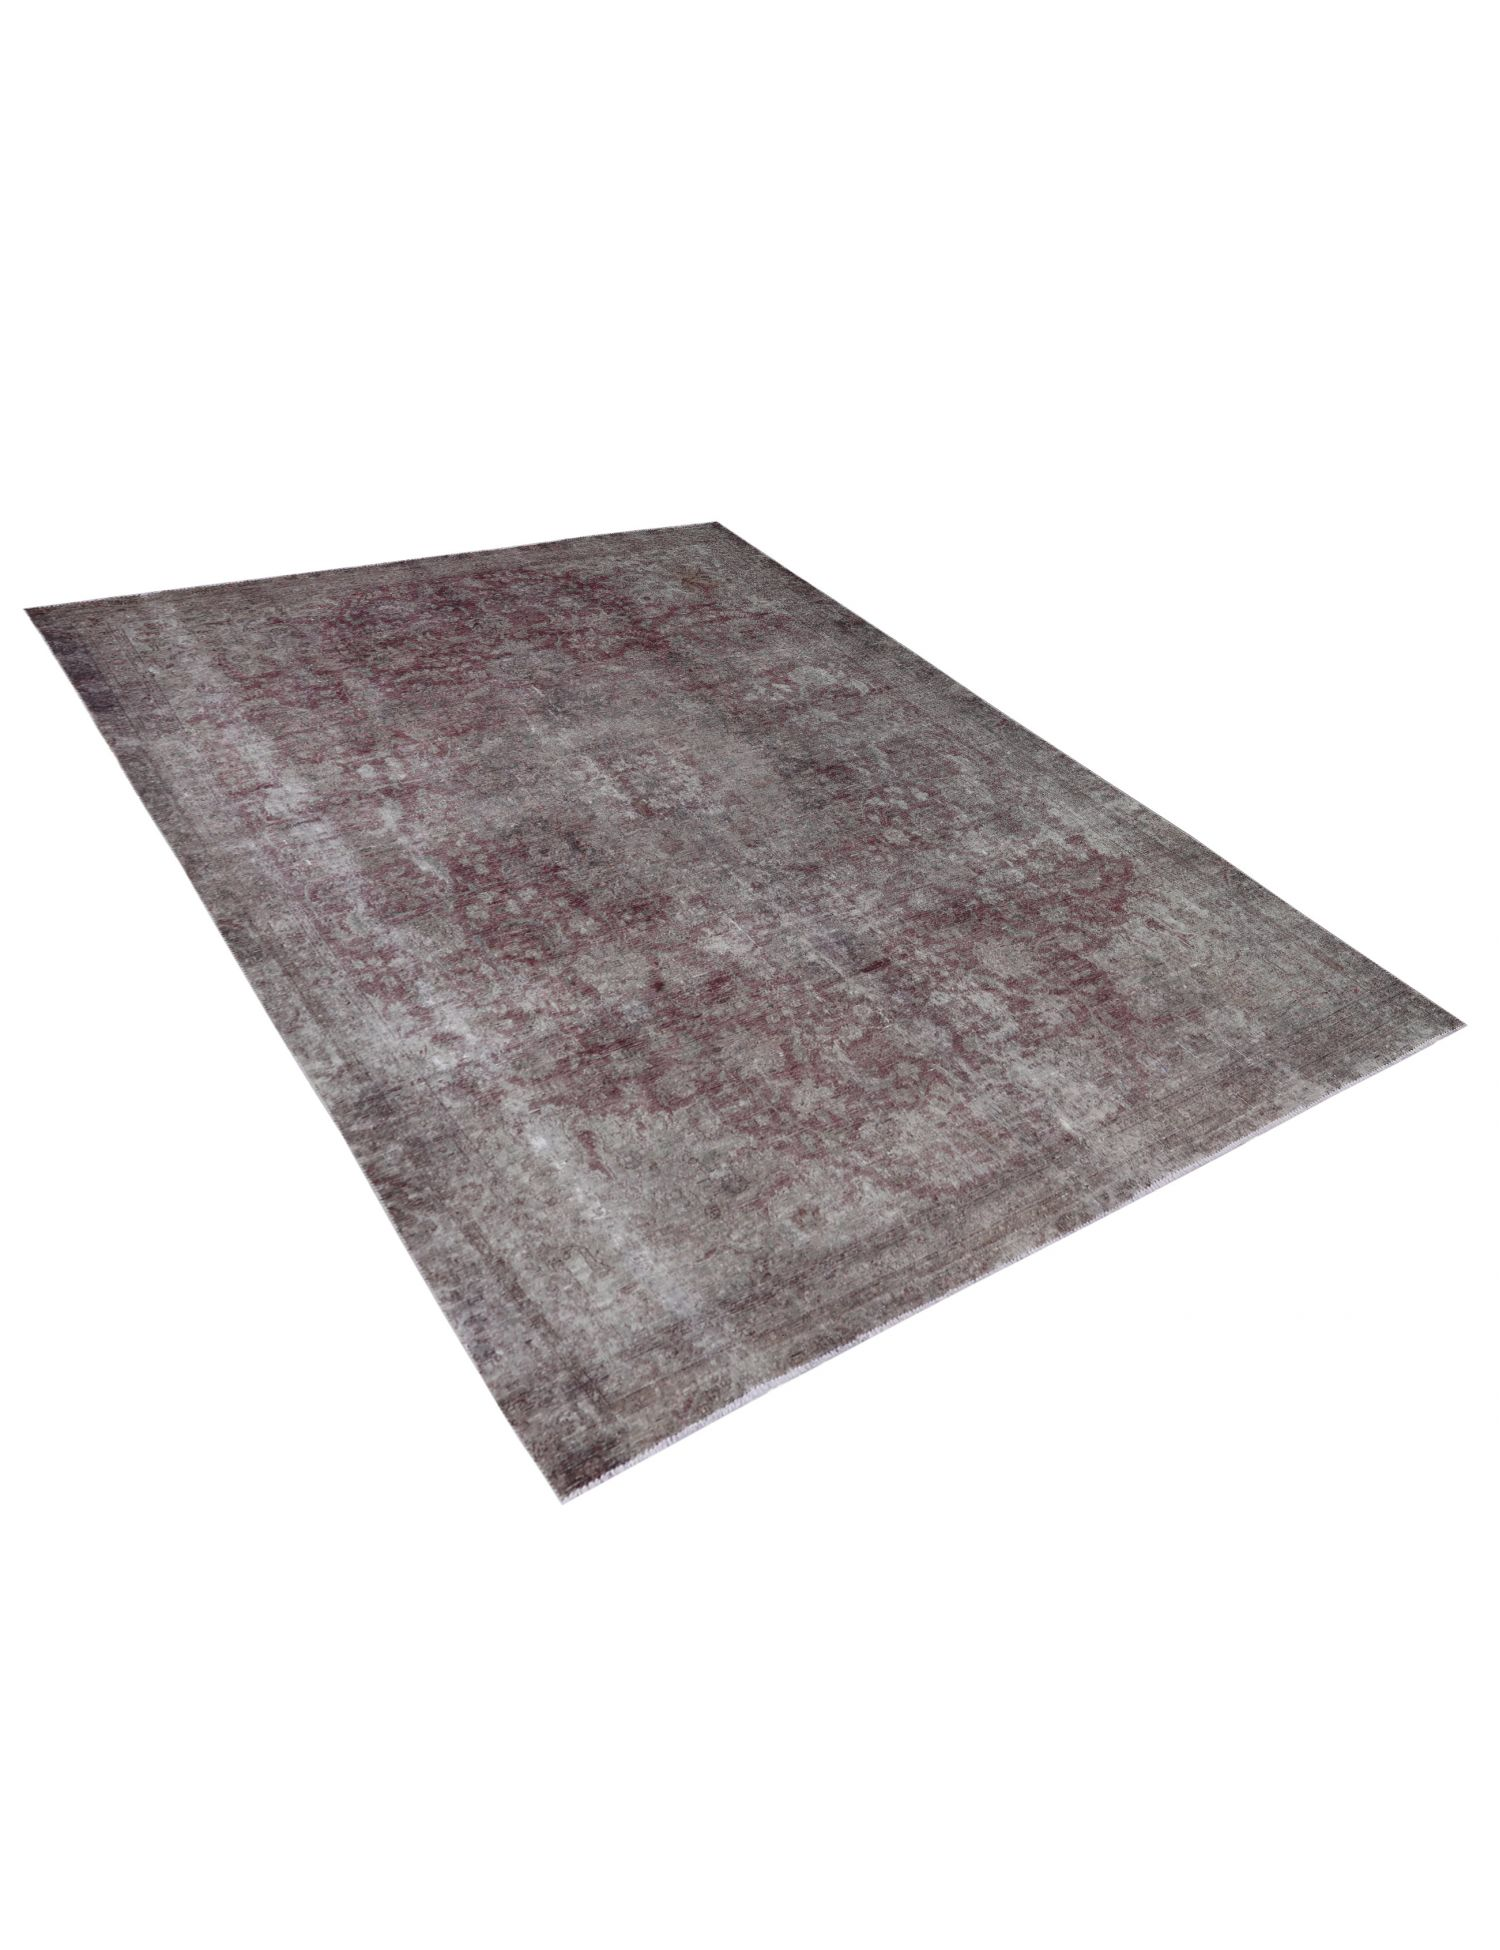 Vintage Carpet  grey <br/>305 x 234 cm